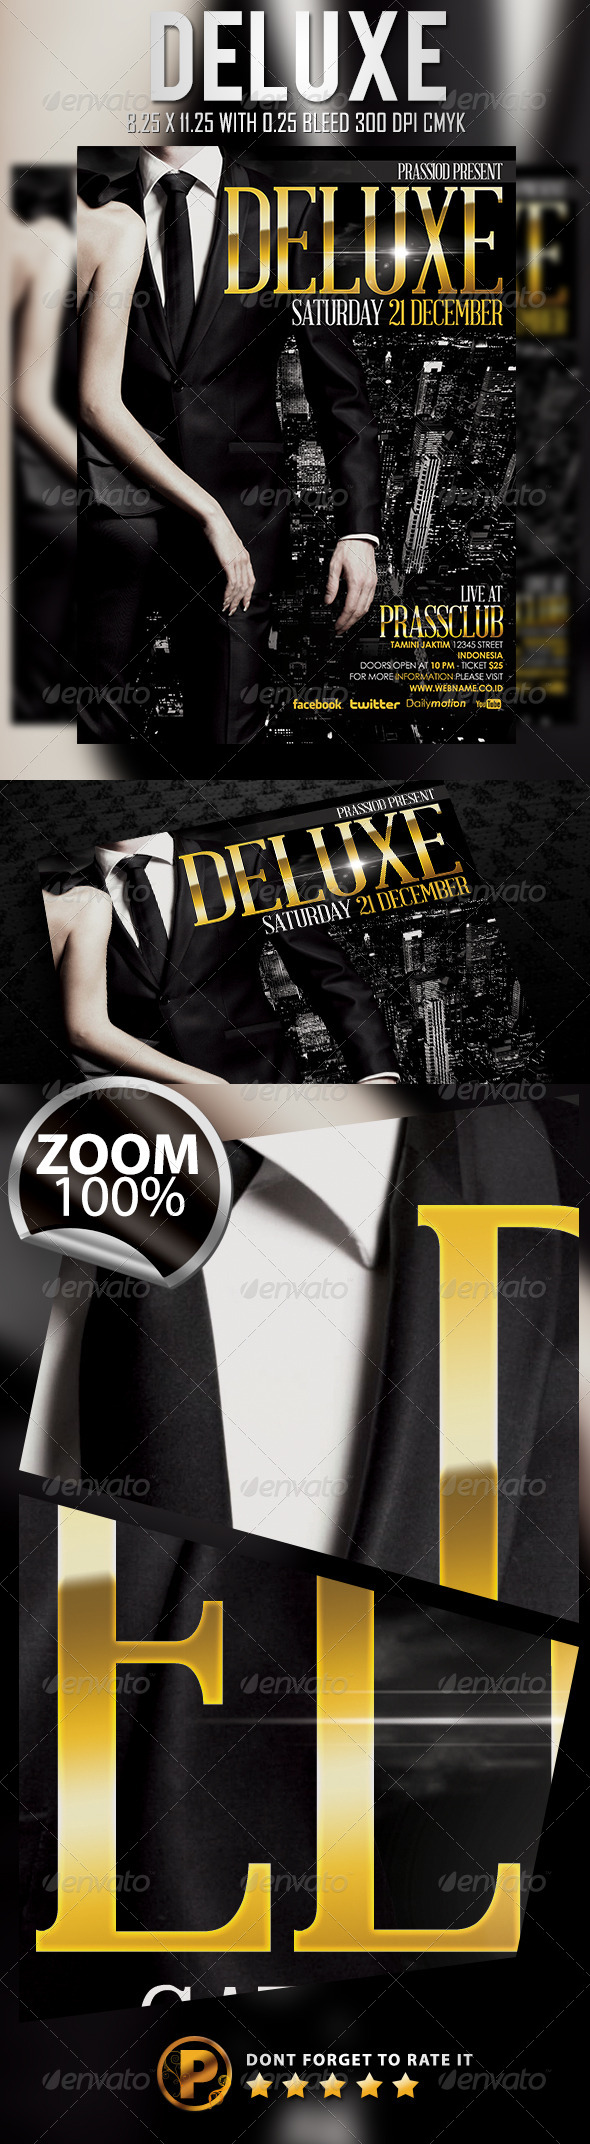 Deluxe Flyer Template - Clubs & Parties Events